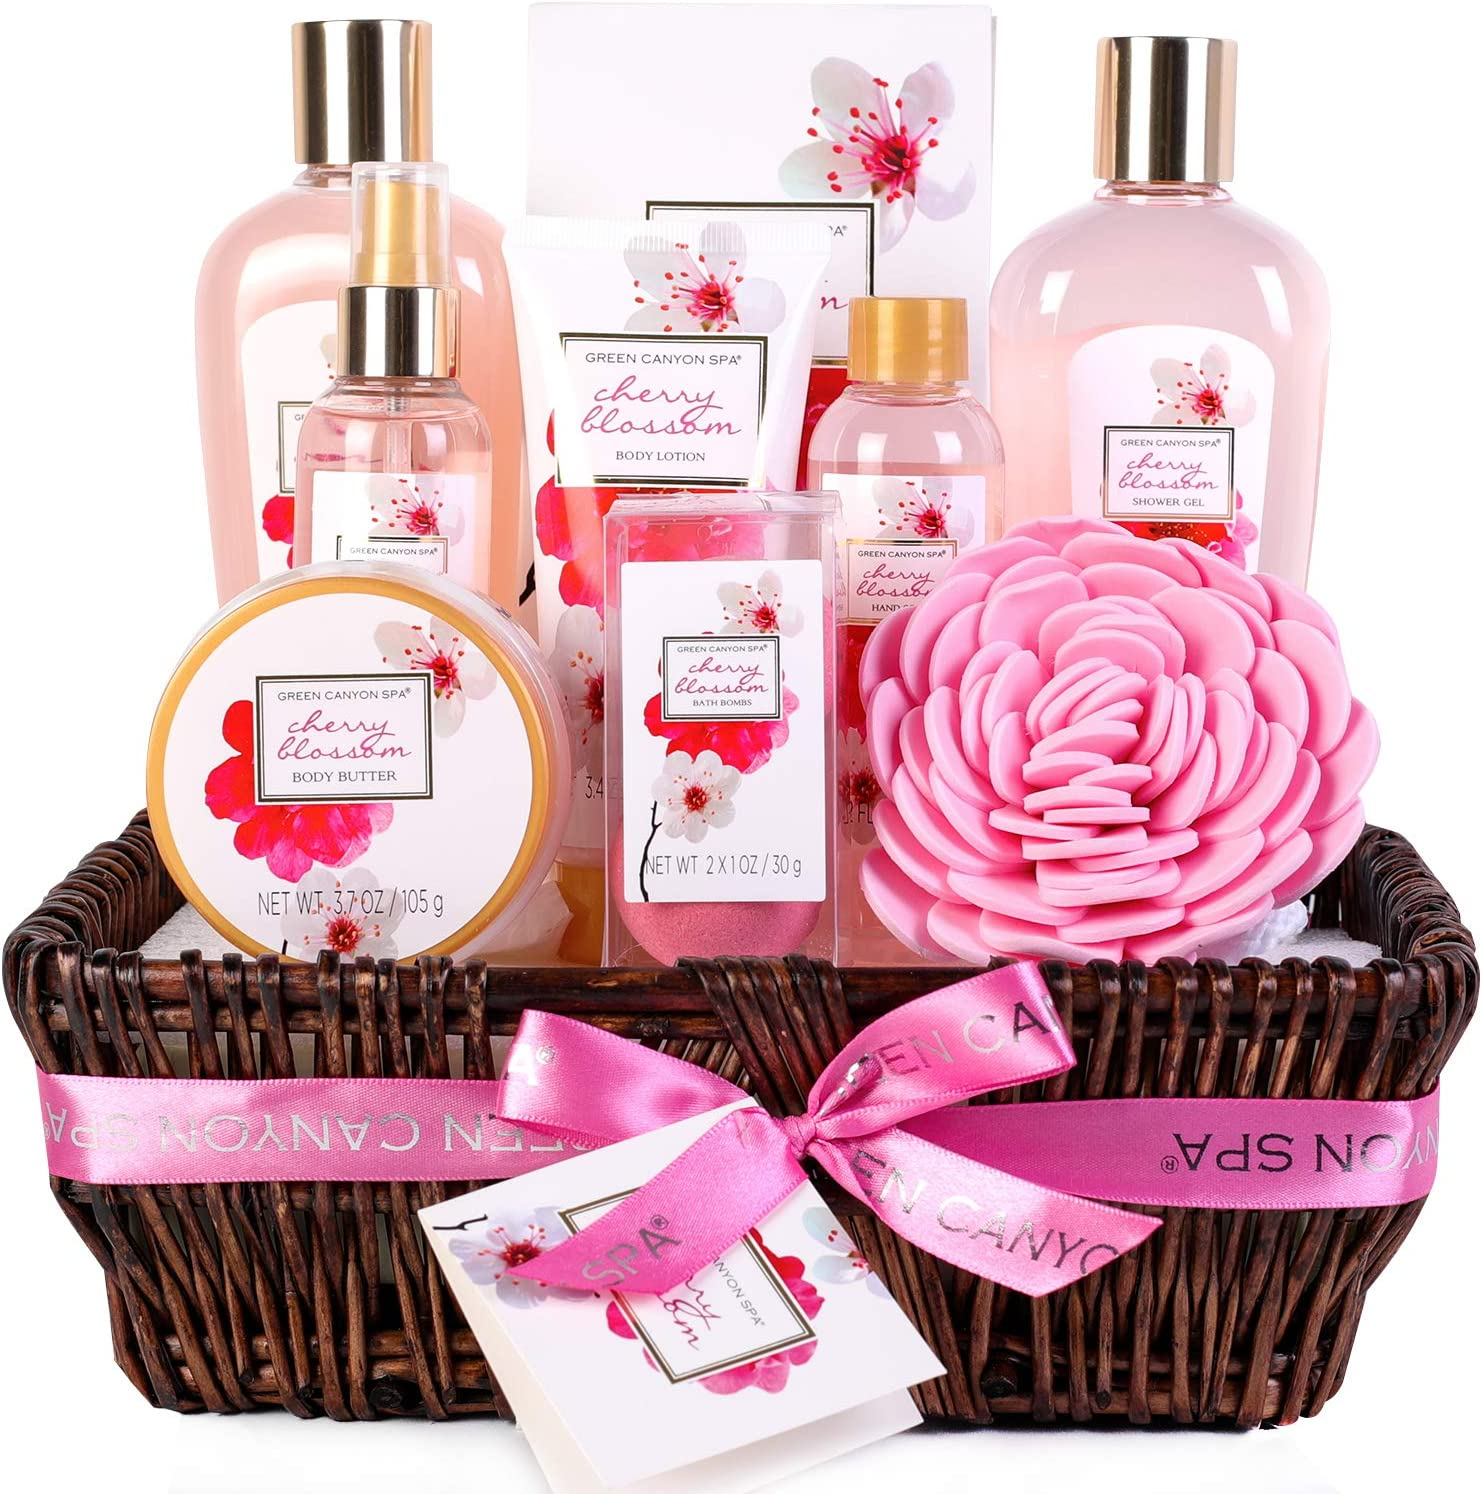 Green Canyon Spa Bath Gift Set For Her Birthday Gift Sets 10 Pcs Cherry Blossom Essential Oil Spa Gift Sets With Handmade Weaved Basket Amazon Co Uk Beauty